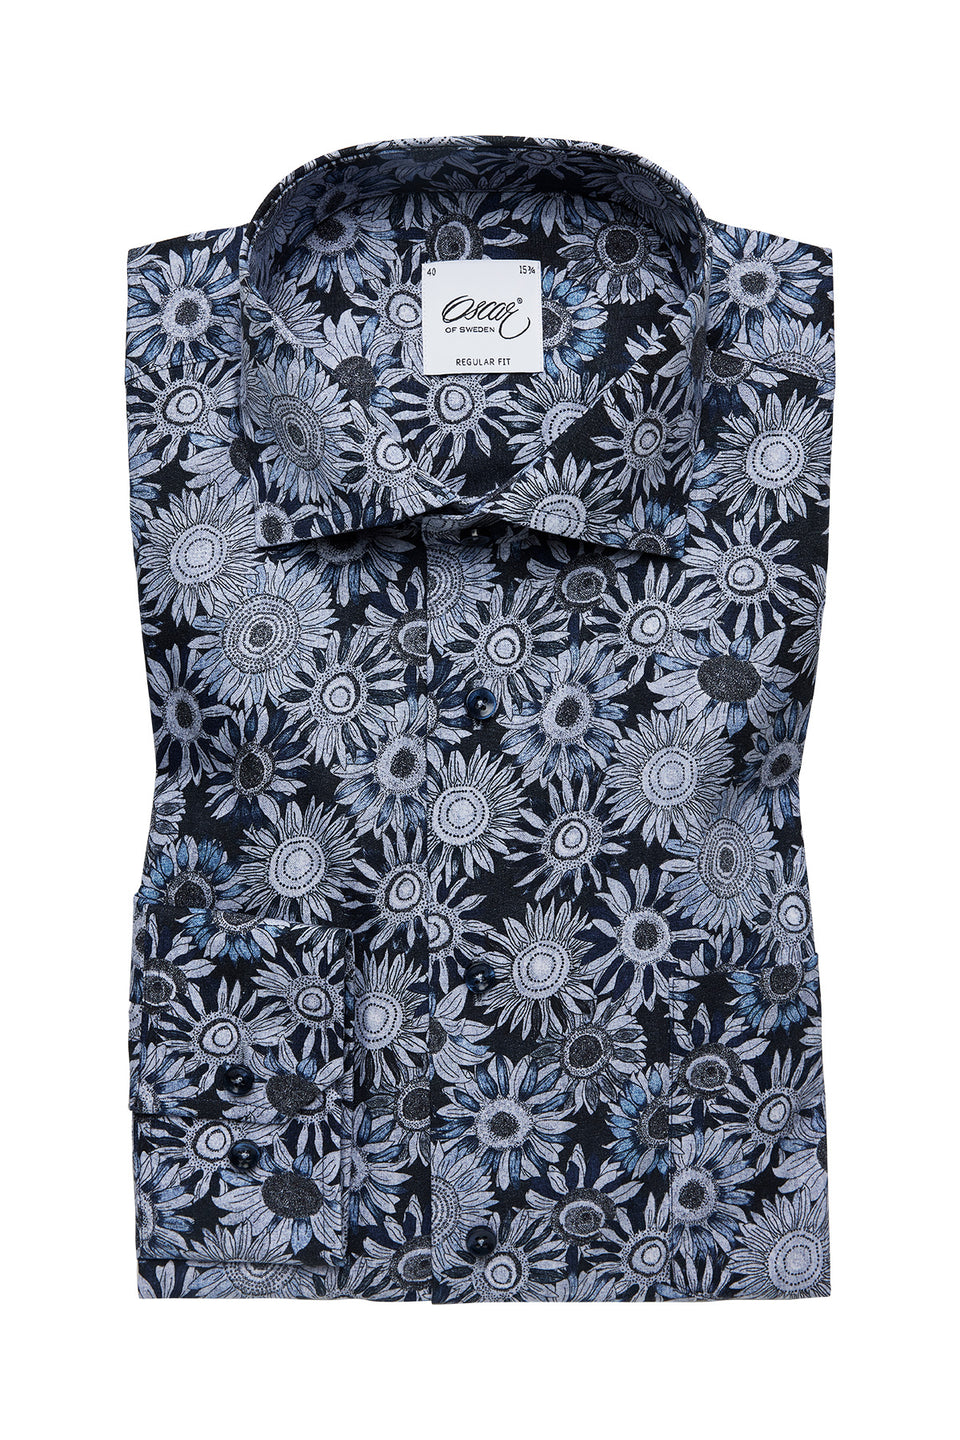 Blue flower printed regular fit shirt